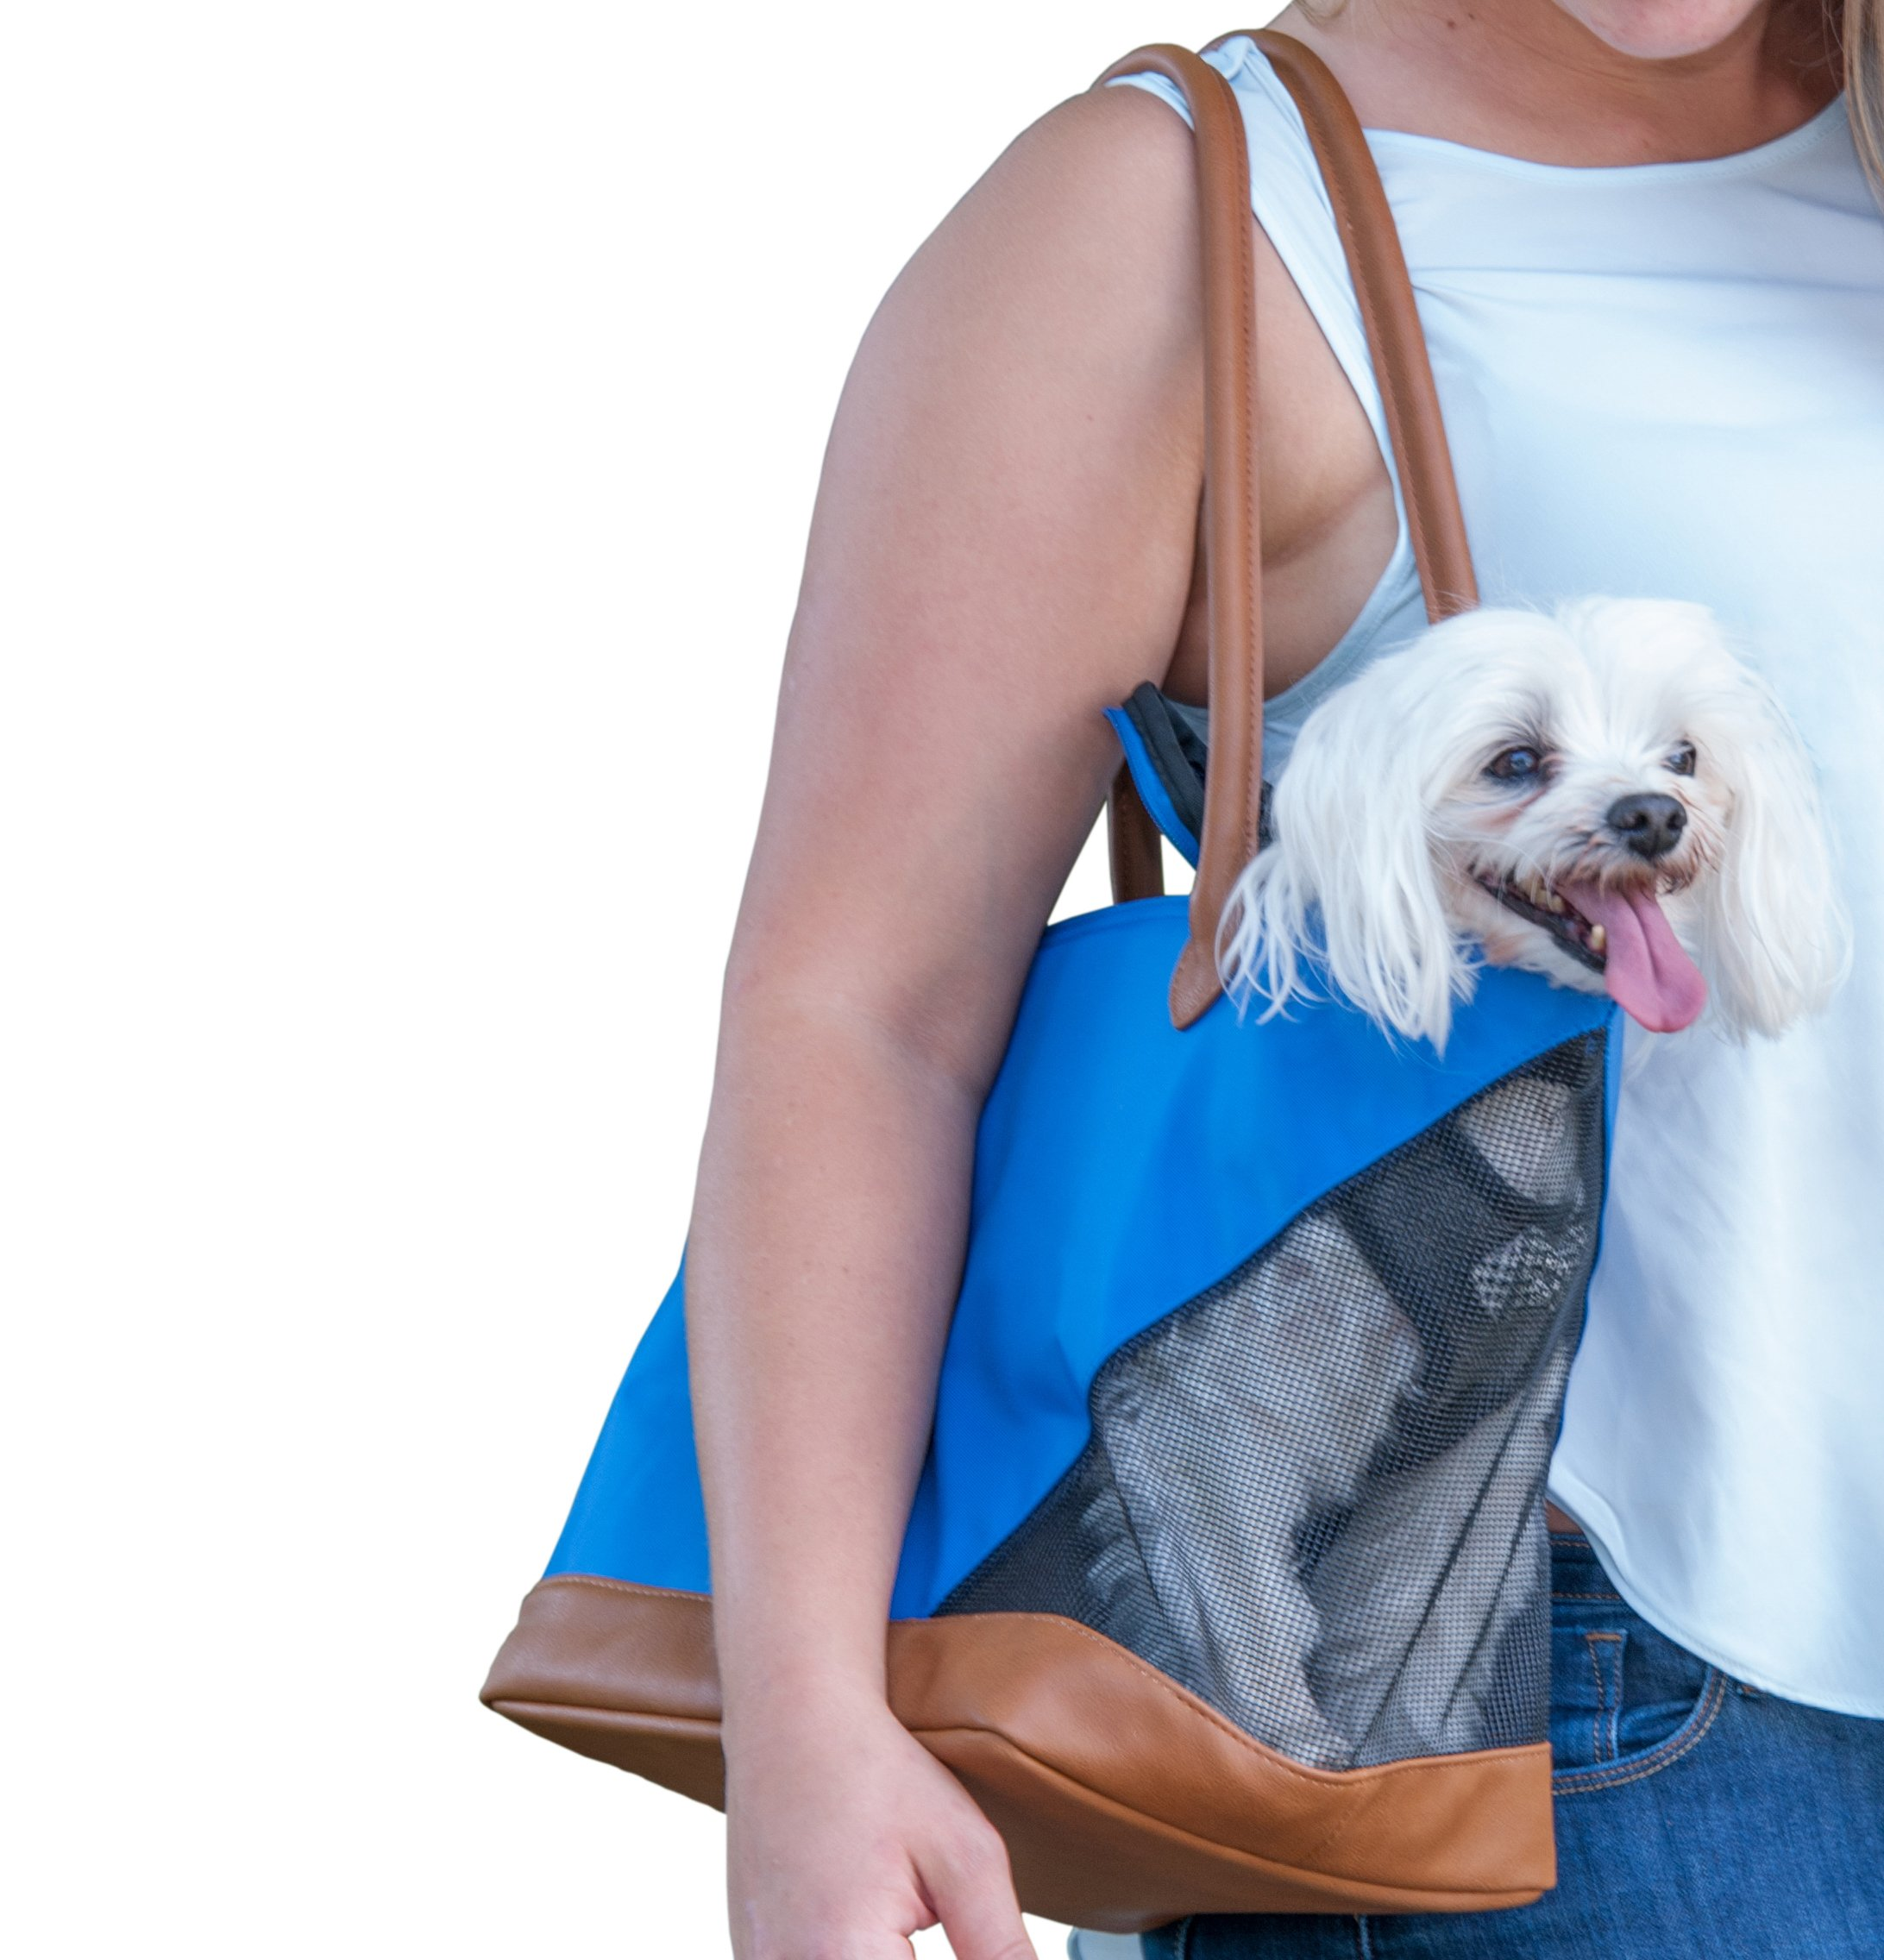 Pet Gear Tote Bag Carrier for Cats/Dogs, Storage Pocket, Removable Washable Liner, Zippered Top and Mesh Windows, Ultramarine